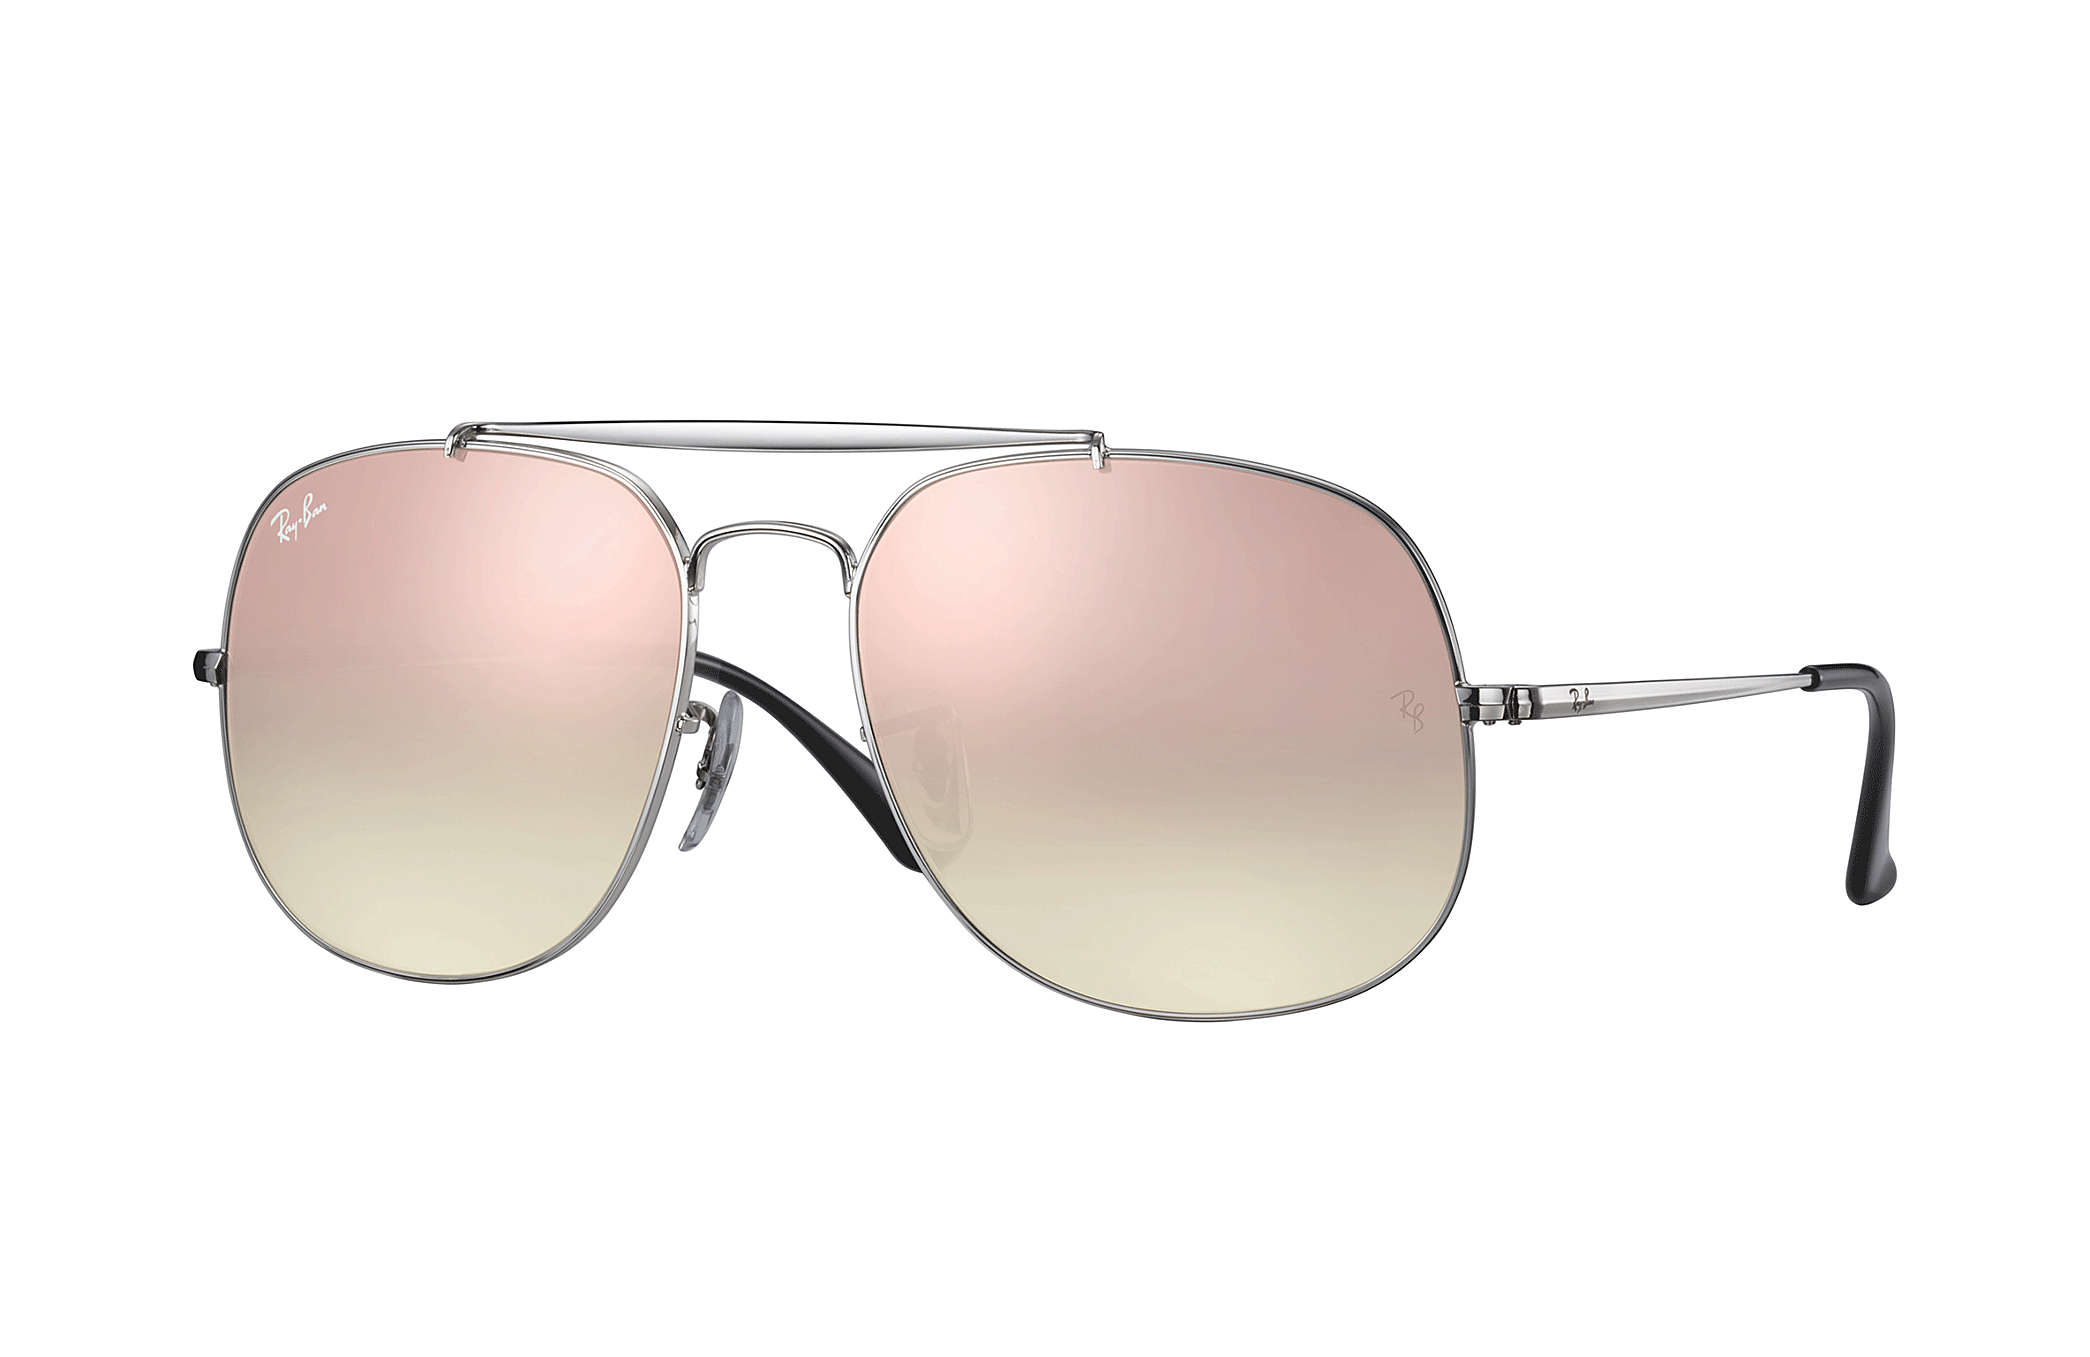 Details about New Ray Ban RB3561-003 7O-5717 Silver   Copper Gradient Flash  57mm Sunglasses 33e8ebaa36